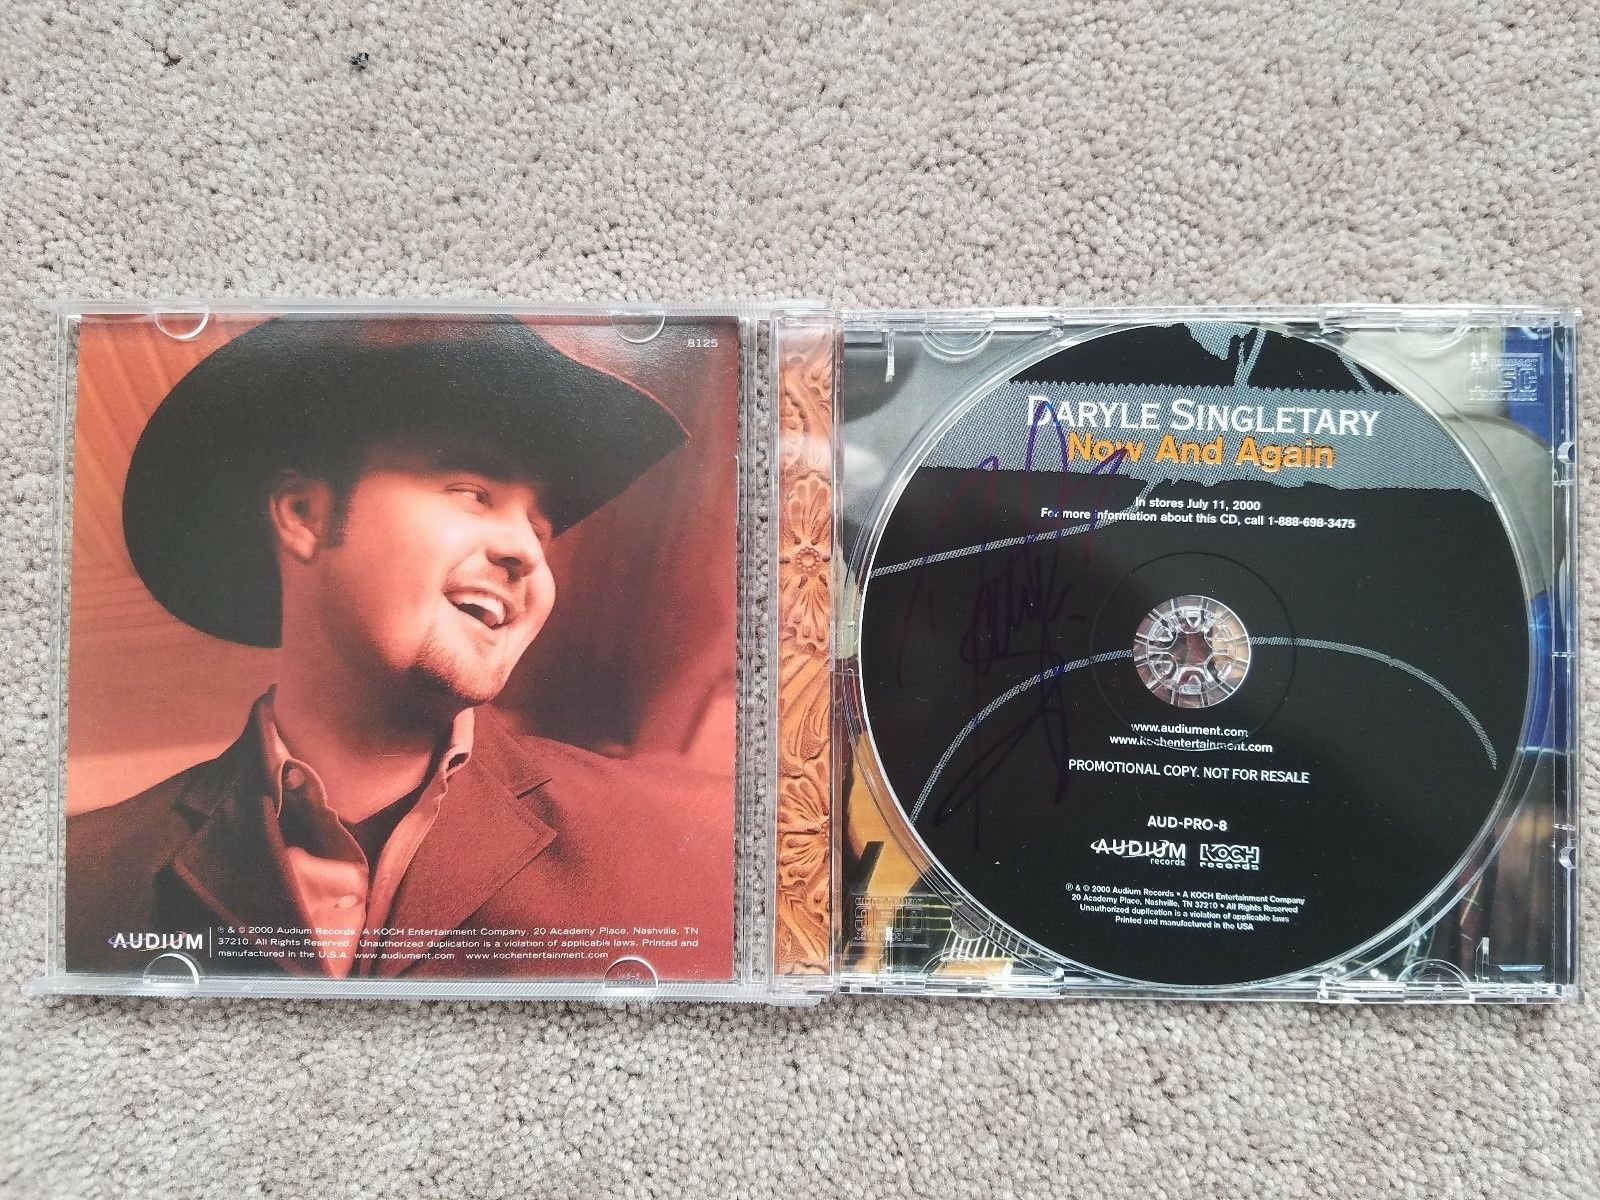 Buy Daryle Singletary   Now and Again CD online eBay 1600x1200